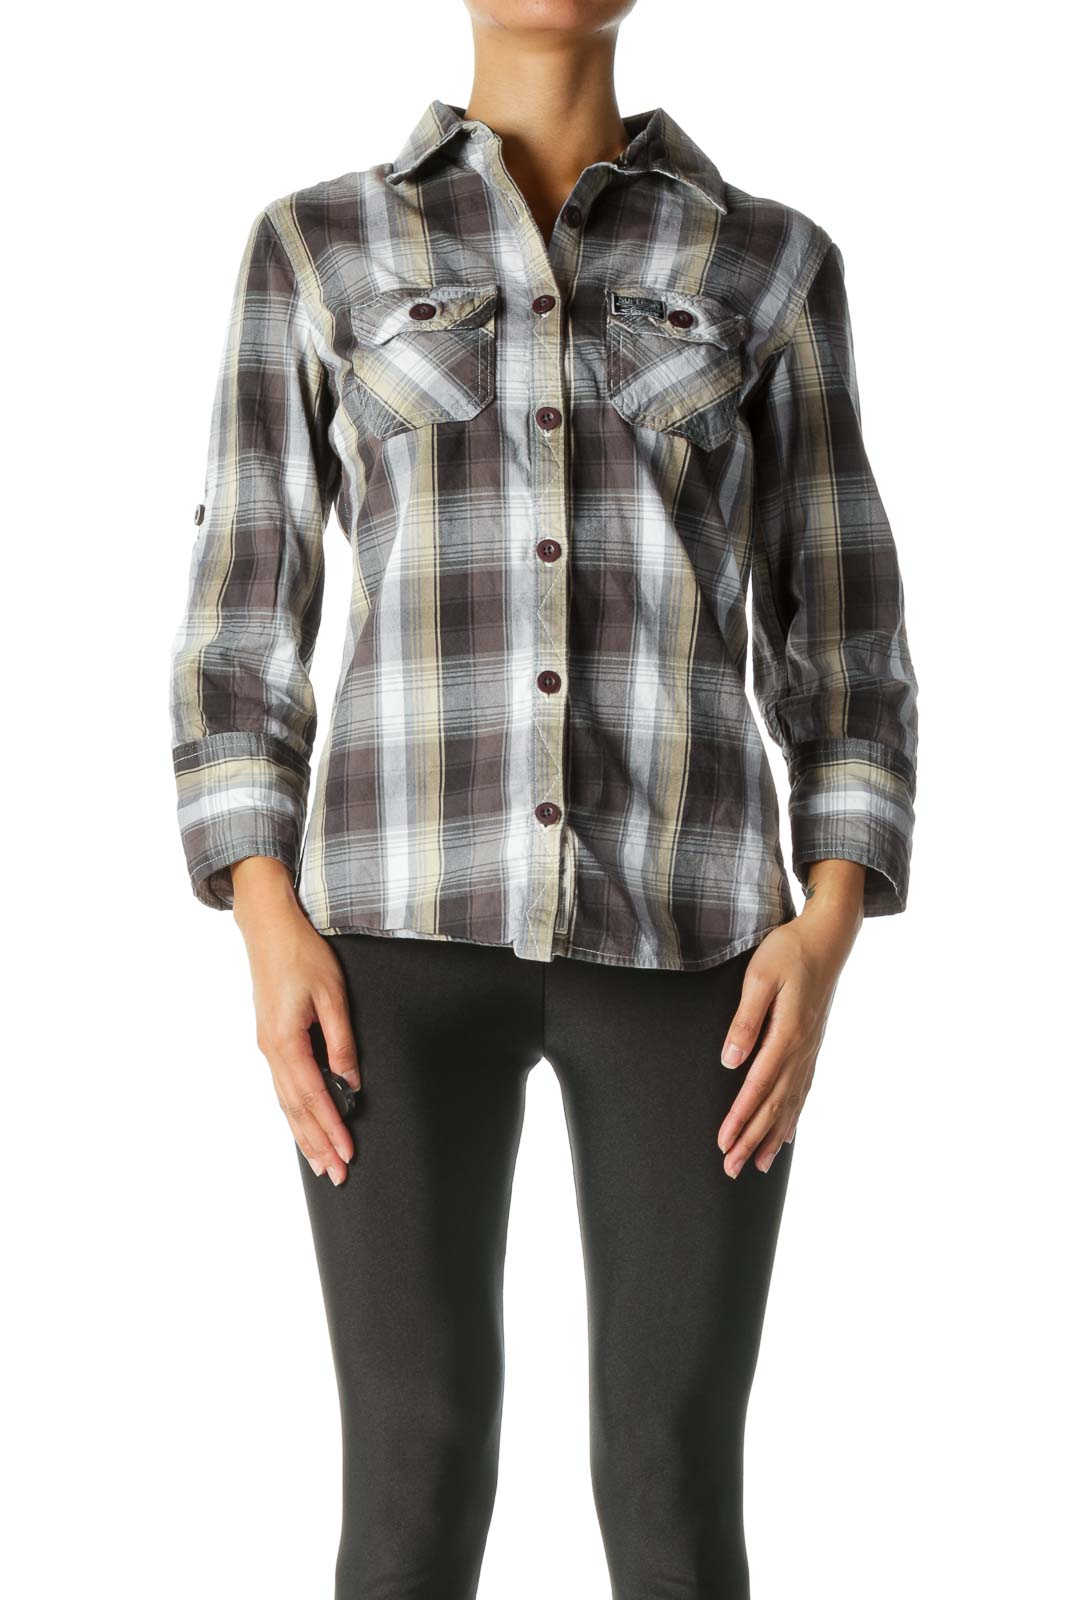 Grey, Beige, And White Plaid Button-Down Shirt Front